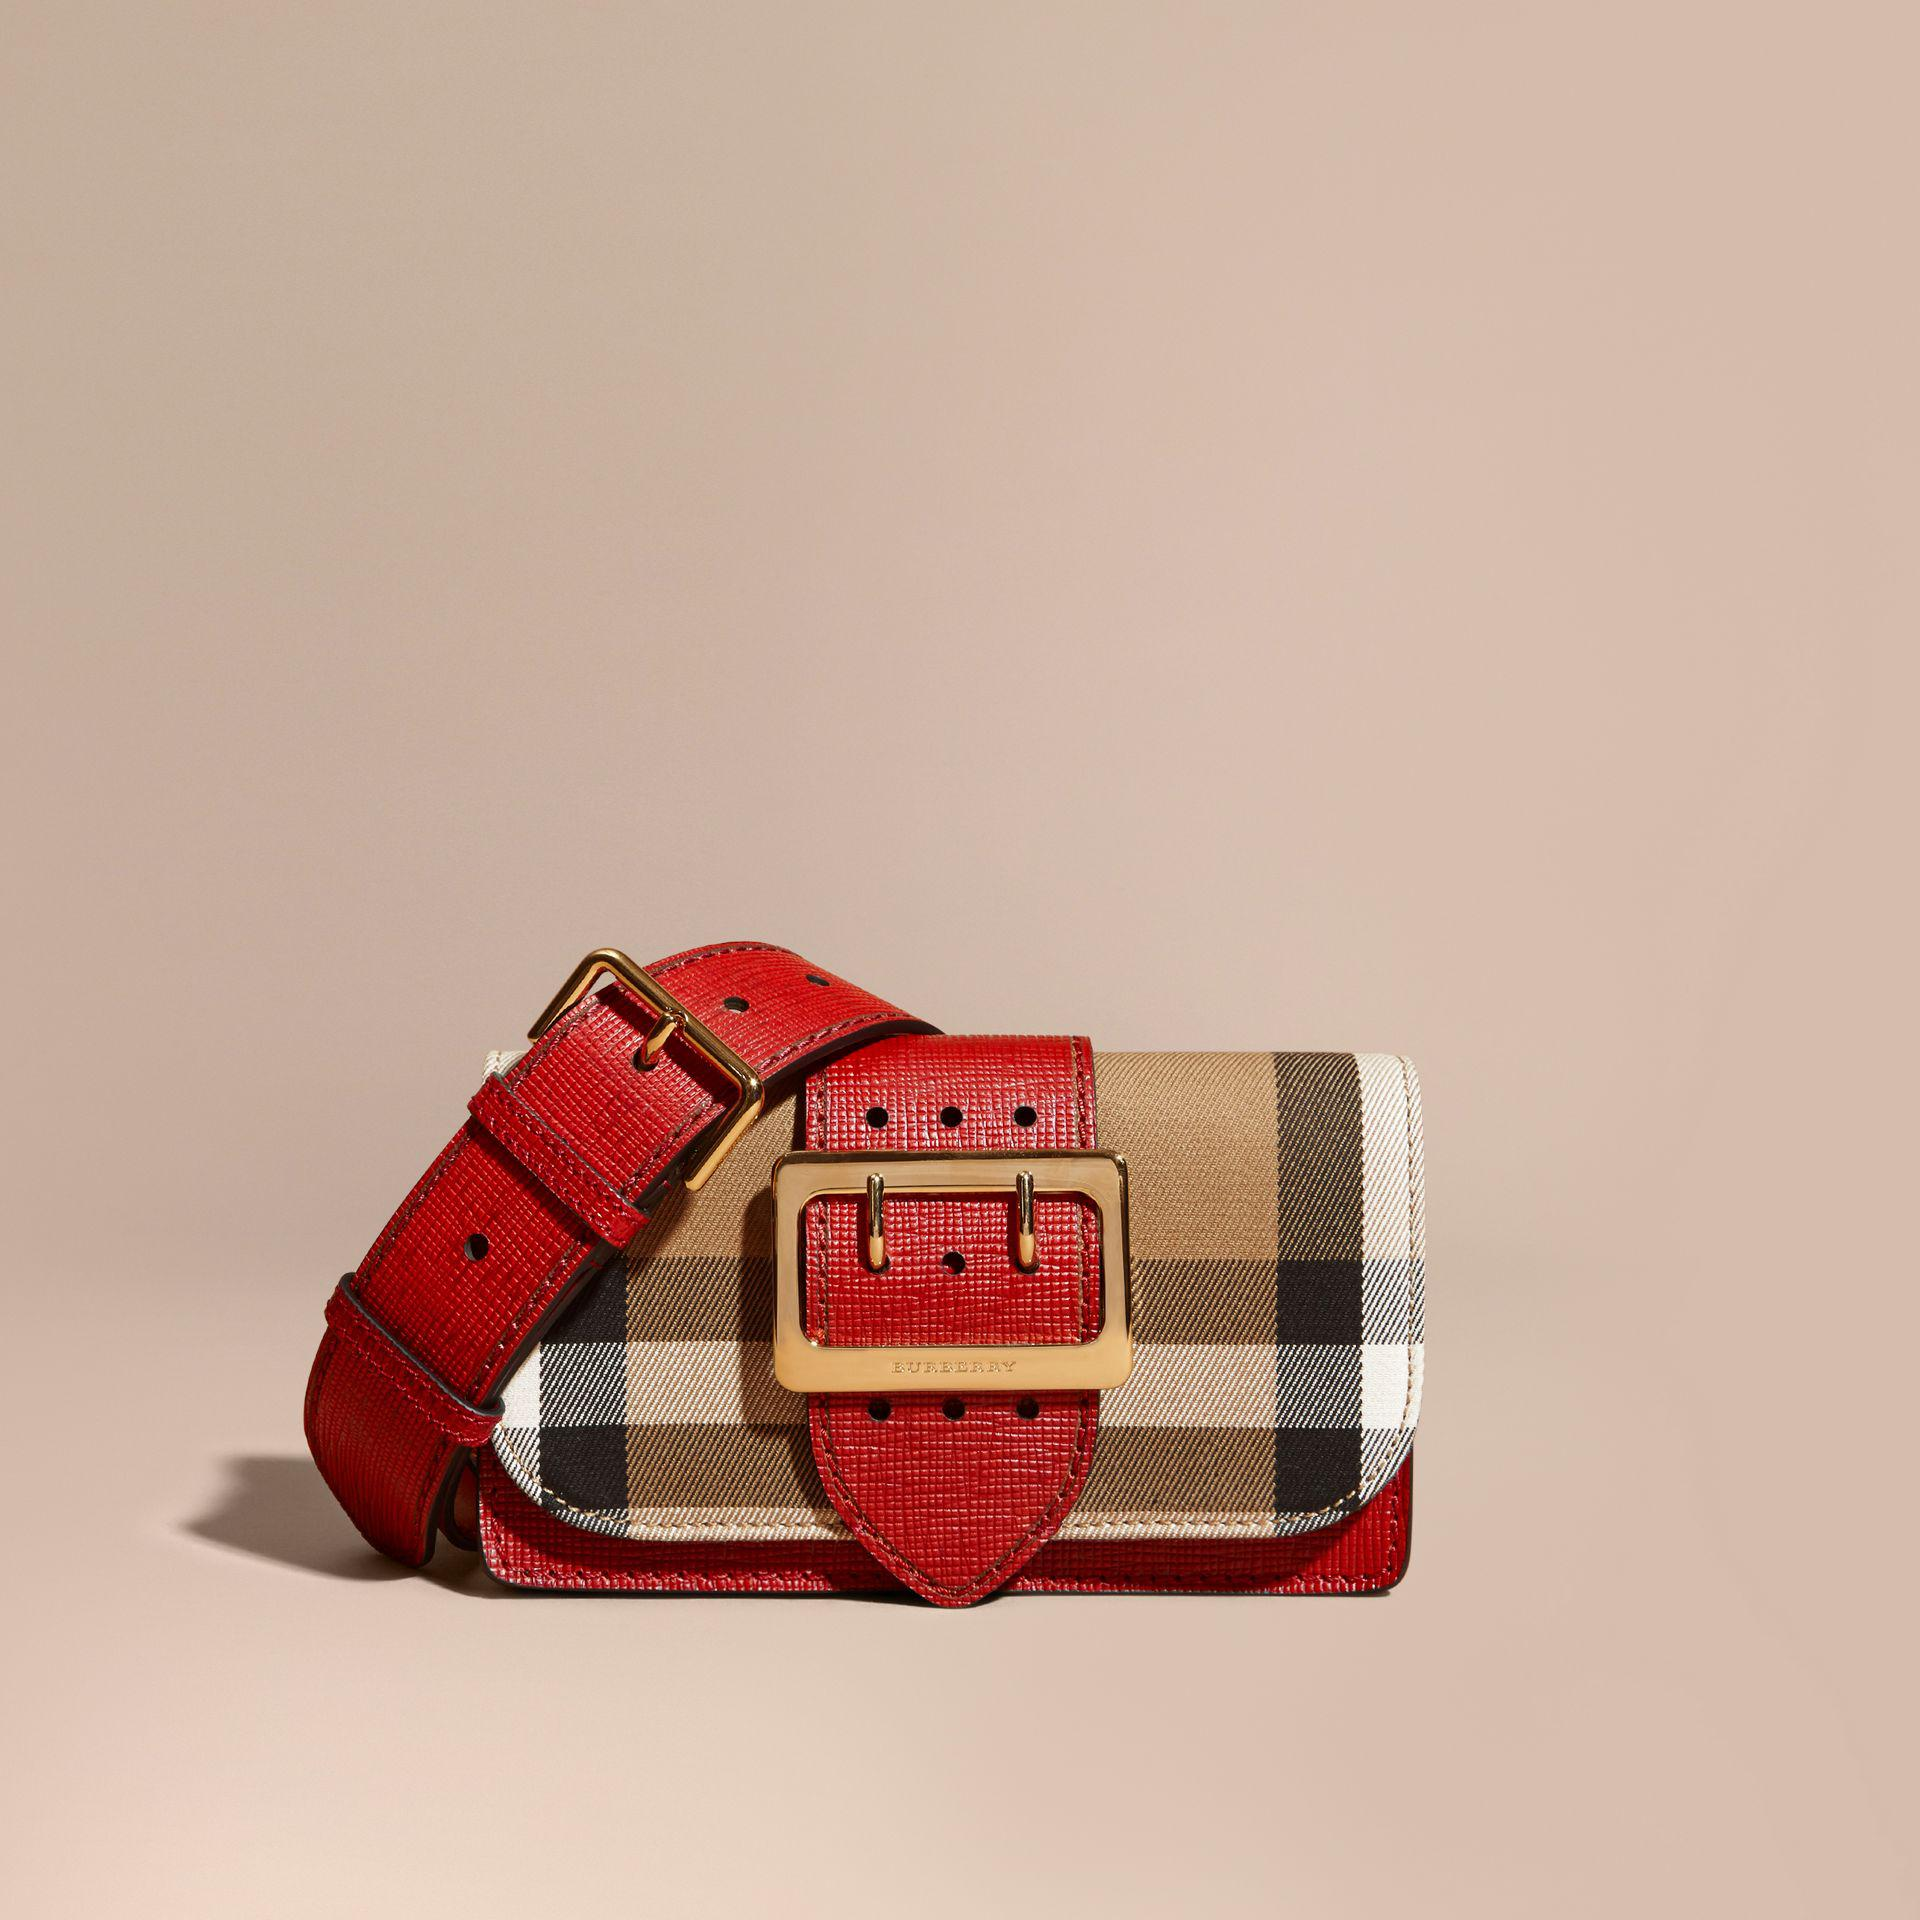 Lyst - Burberry Small Buckle House Check And Leather Shoulder Bag in ... 04cda74870c4f